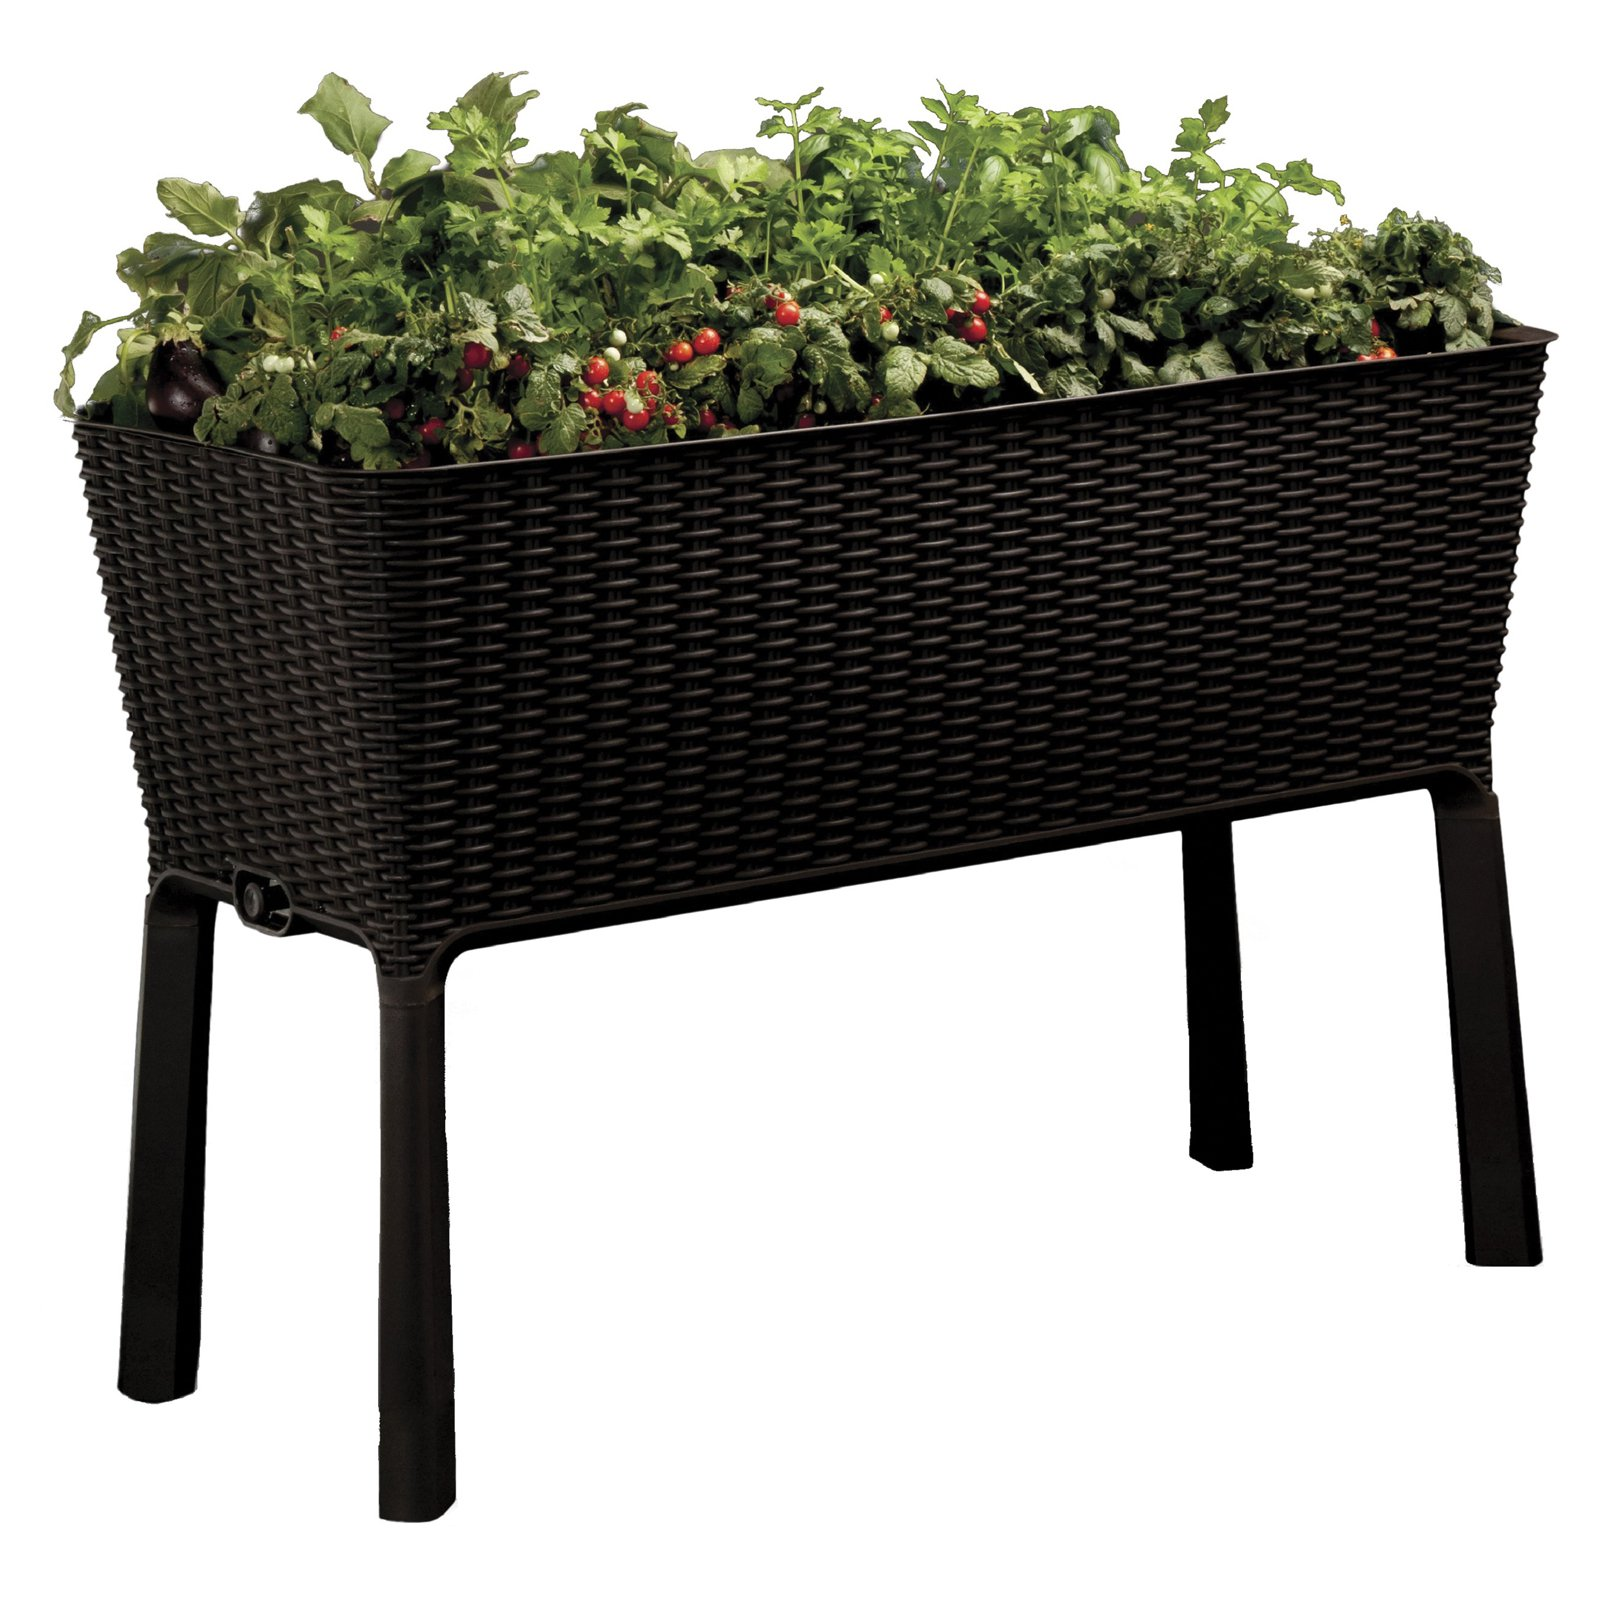 Elevated Garden Raised Planter Easy Grow Flower Bed Outdoor Patio Brown  Keter